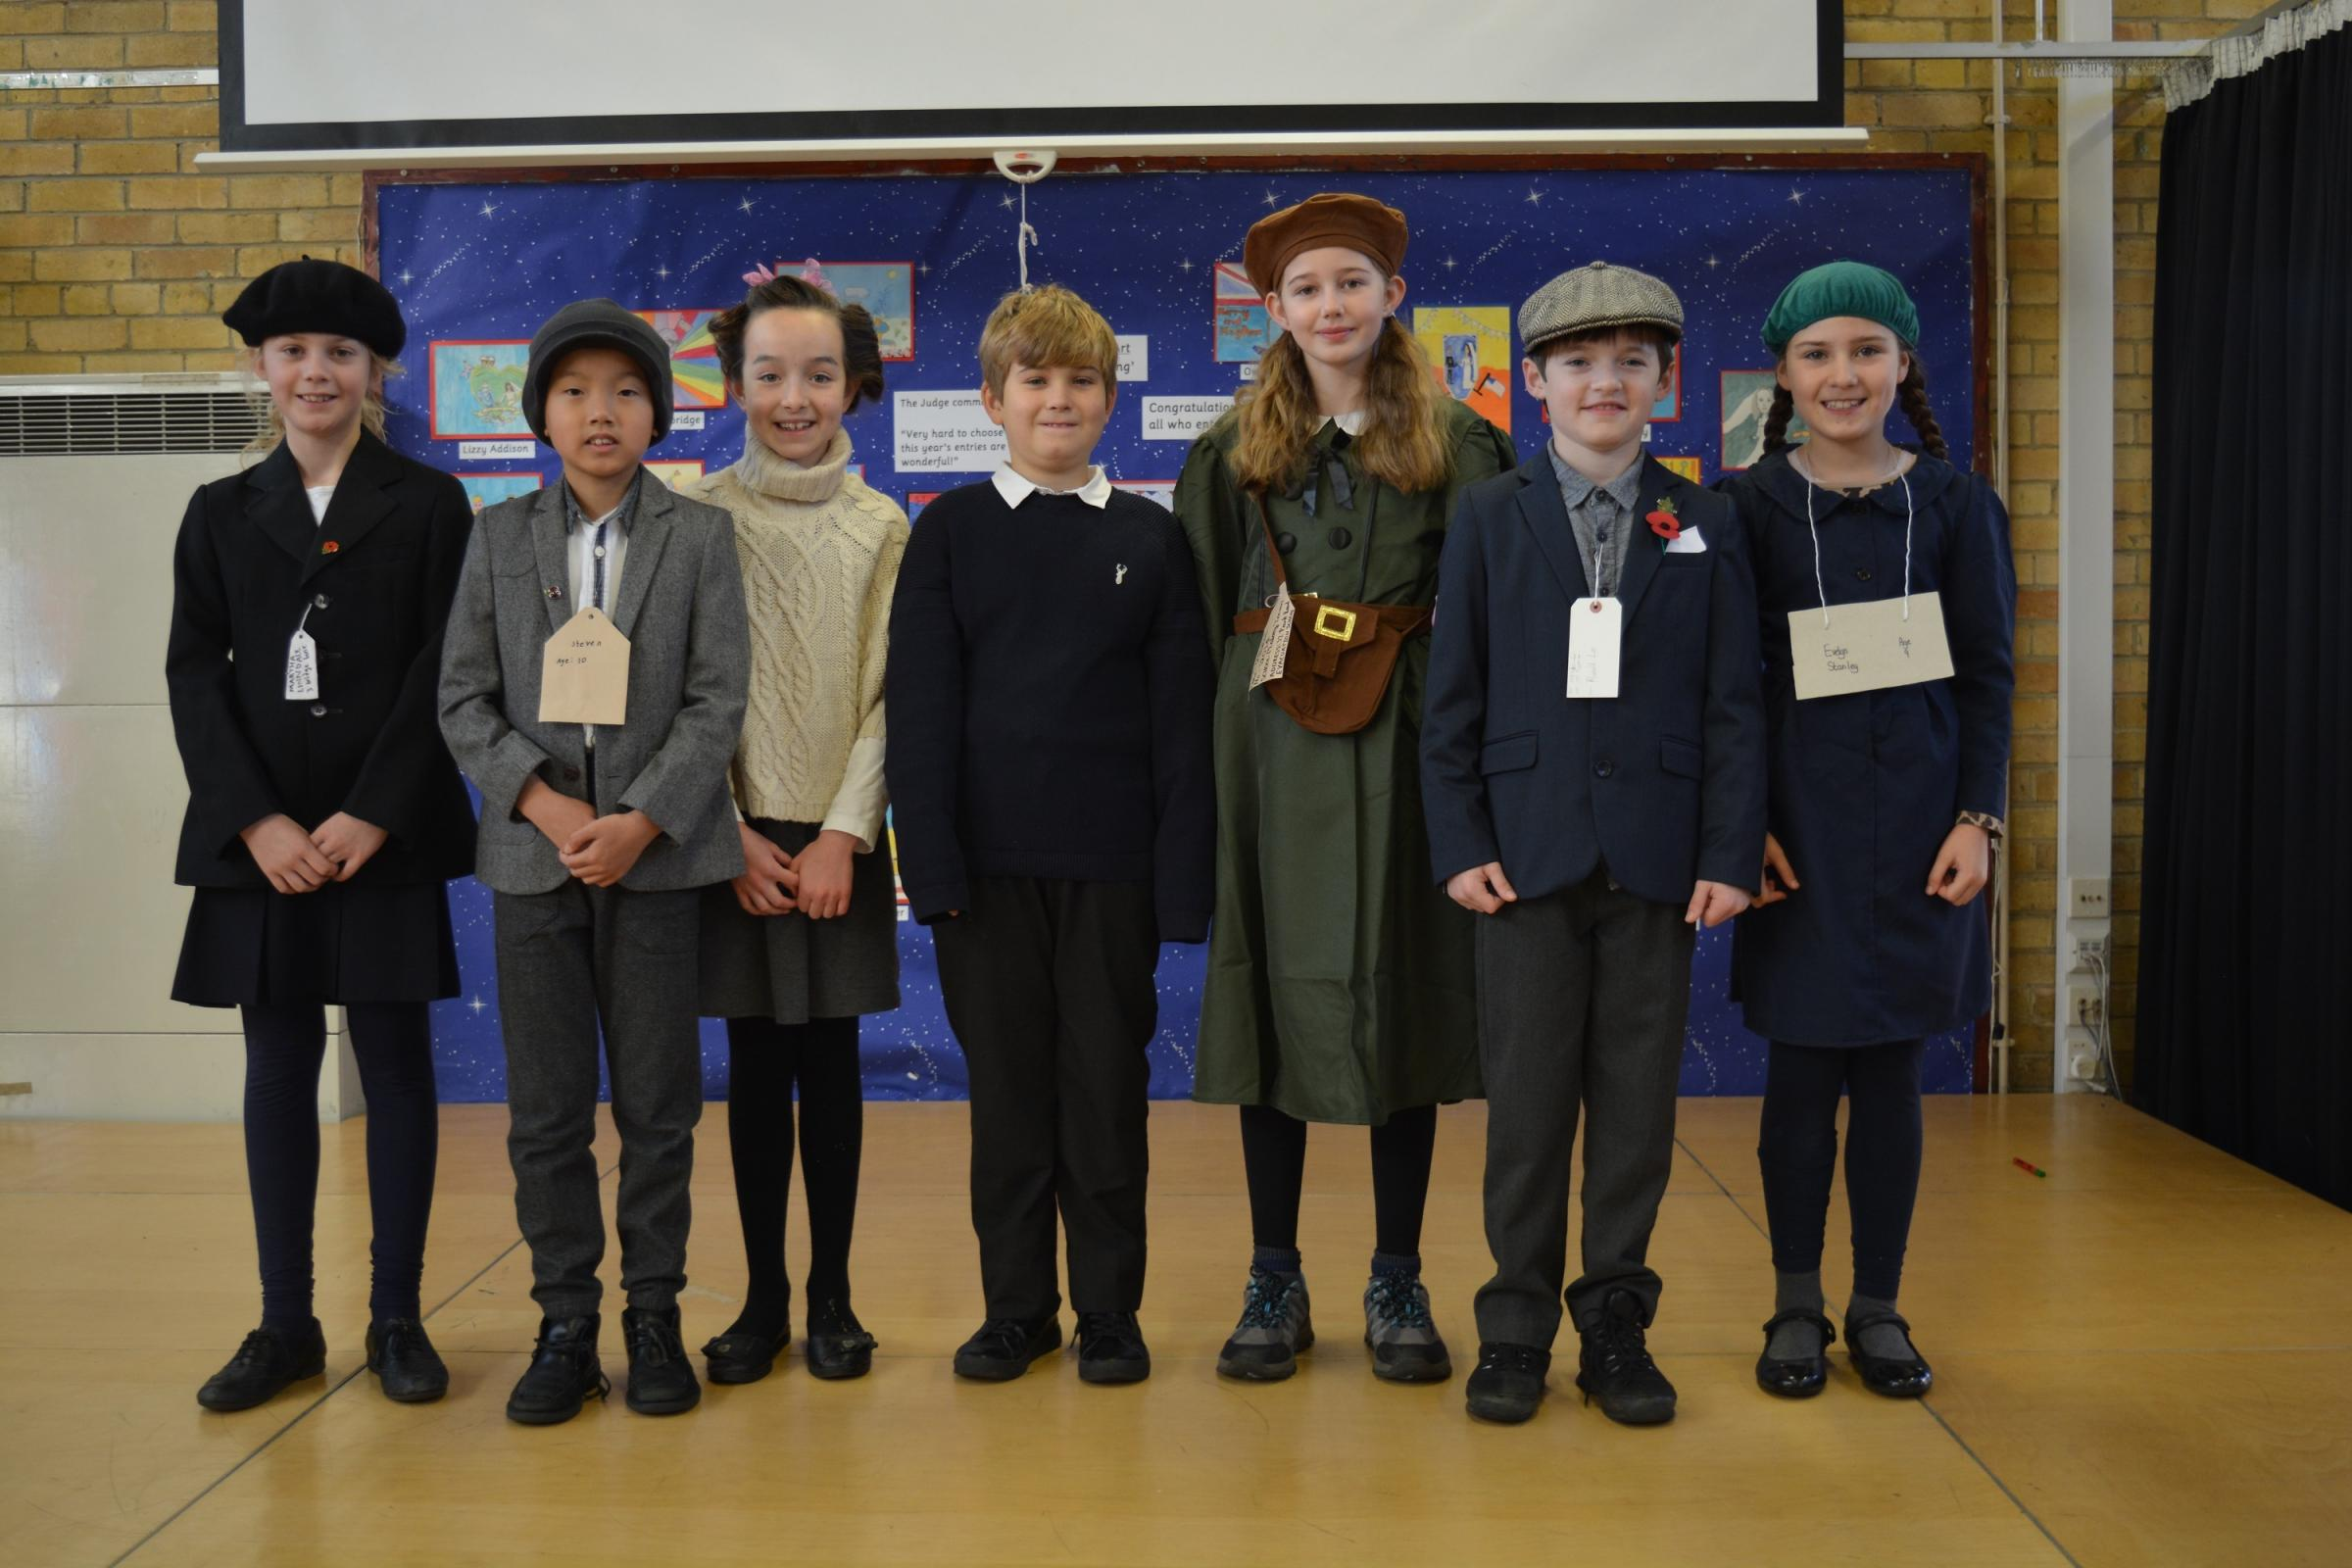 EDUCATIONAL TRIP: Year 5 pupils from Sedgefield Primary School dressed as evacuees for a day at Beamish Museum